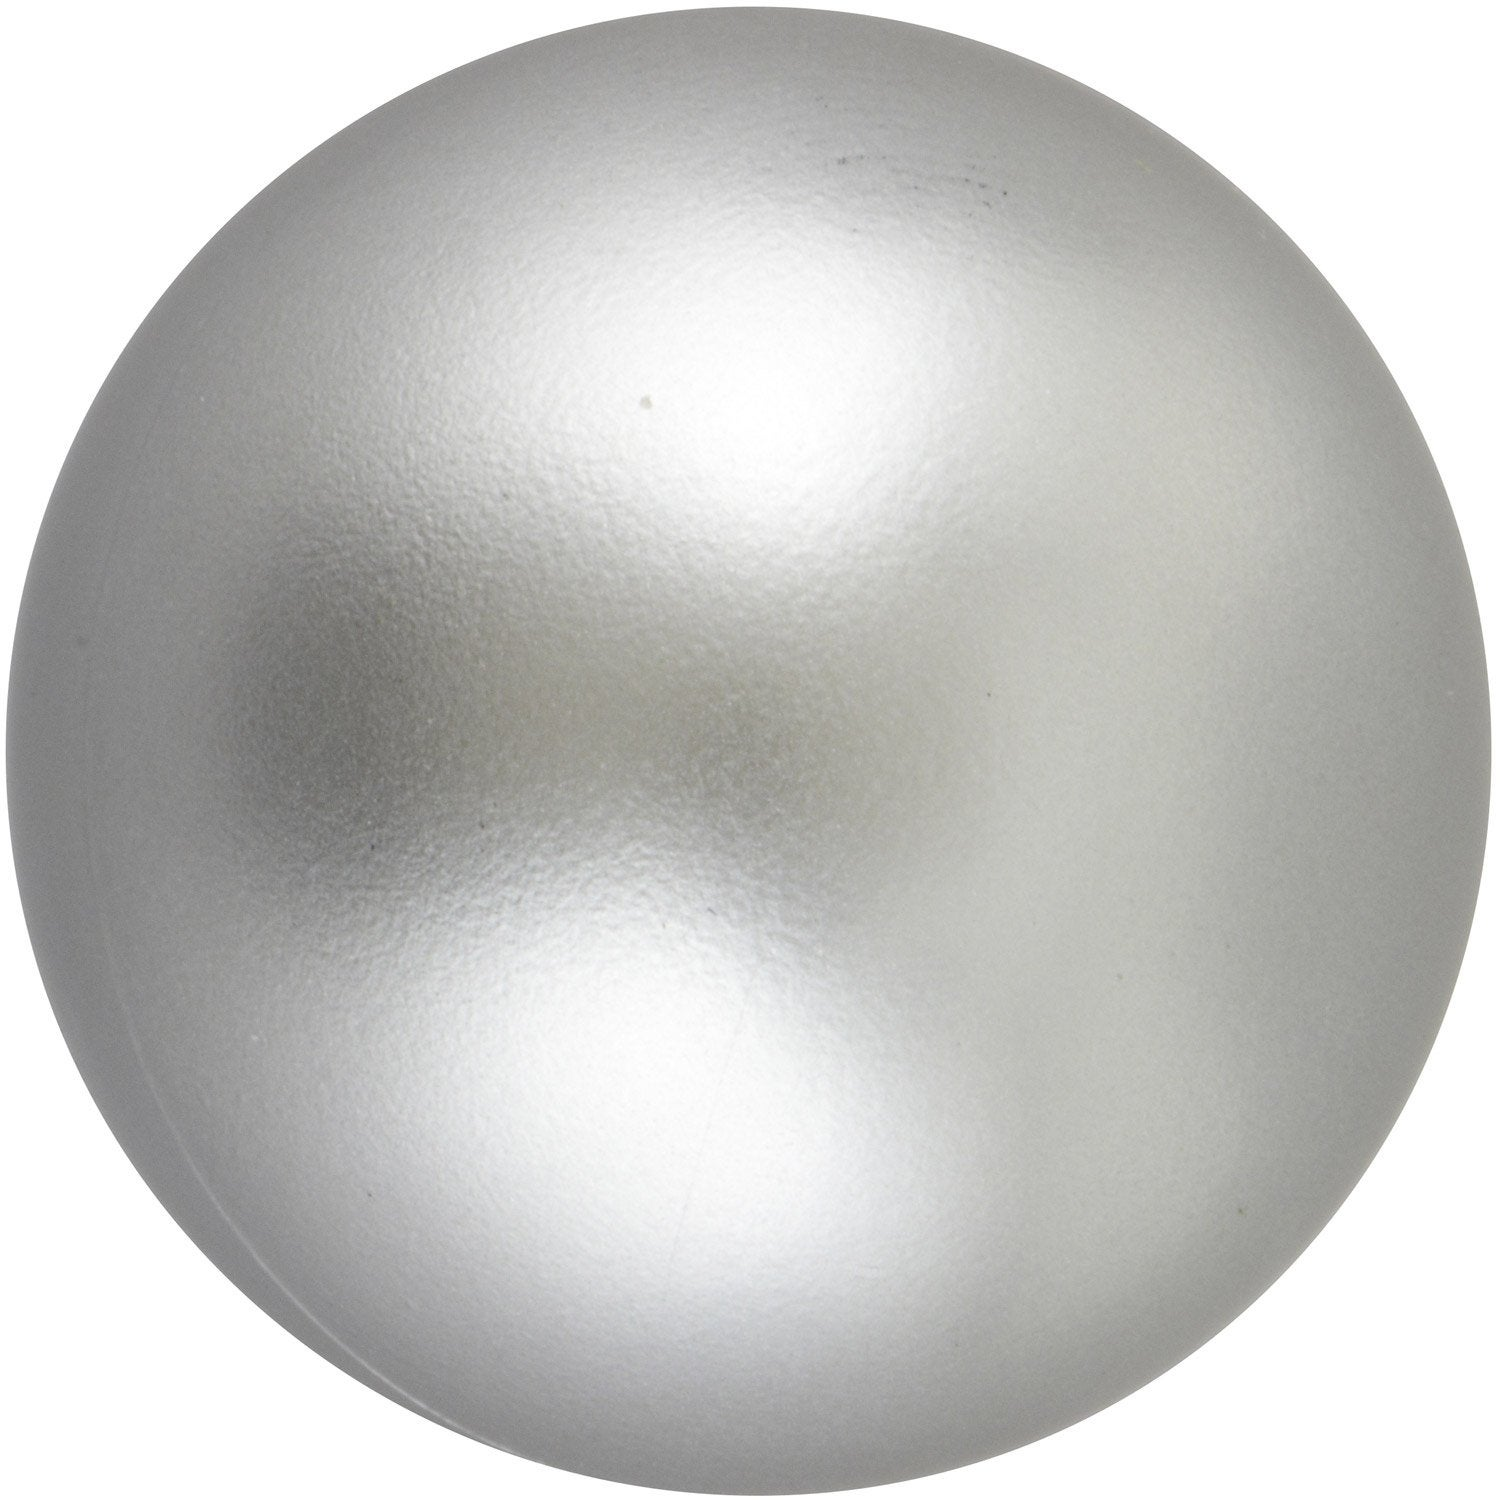 bouton de meuble boule plastique nickel 233 leroy merlin